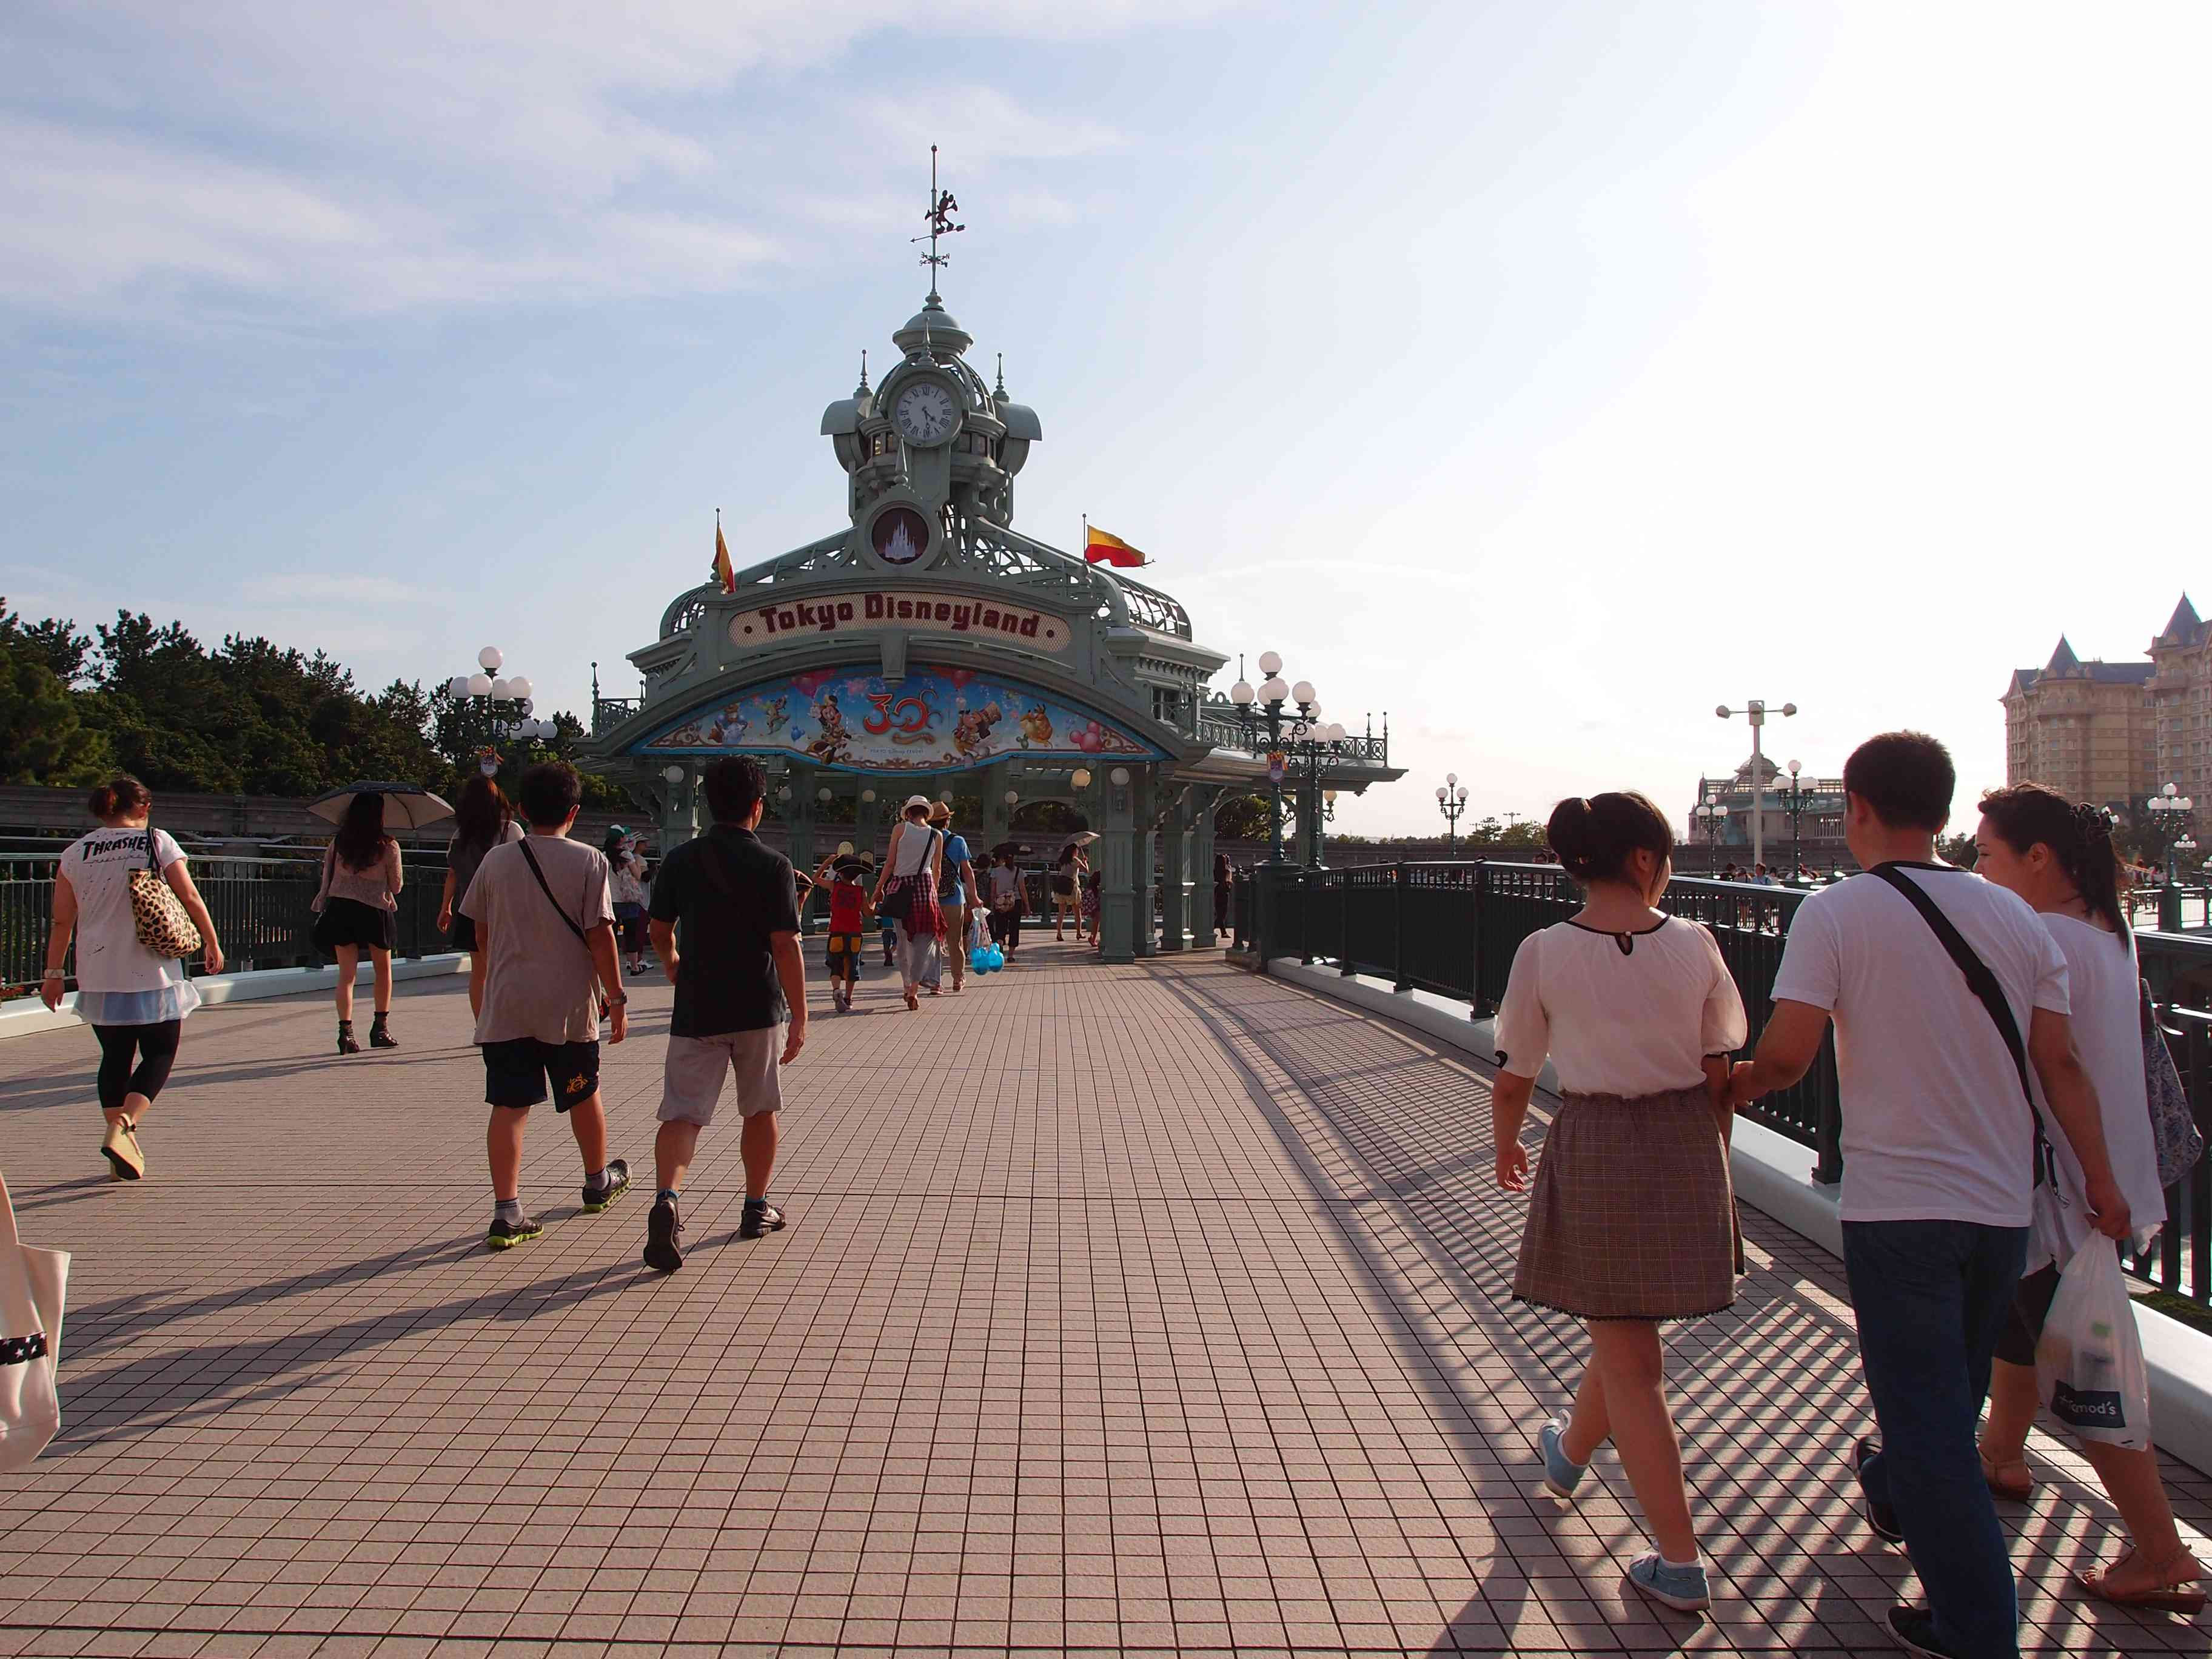 Entrance to tokyo disnetland with a group of people walking towards it